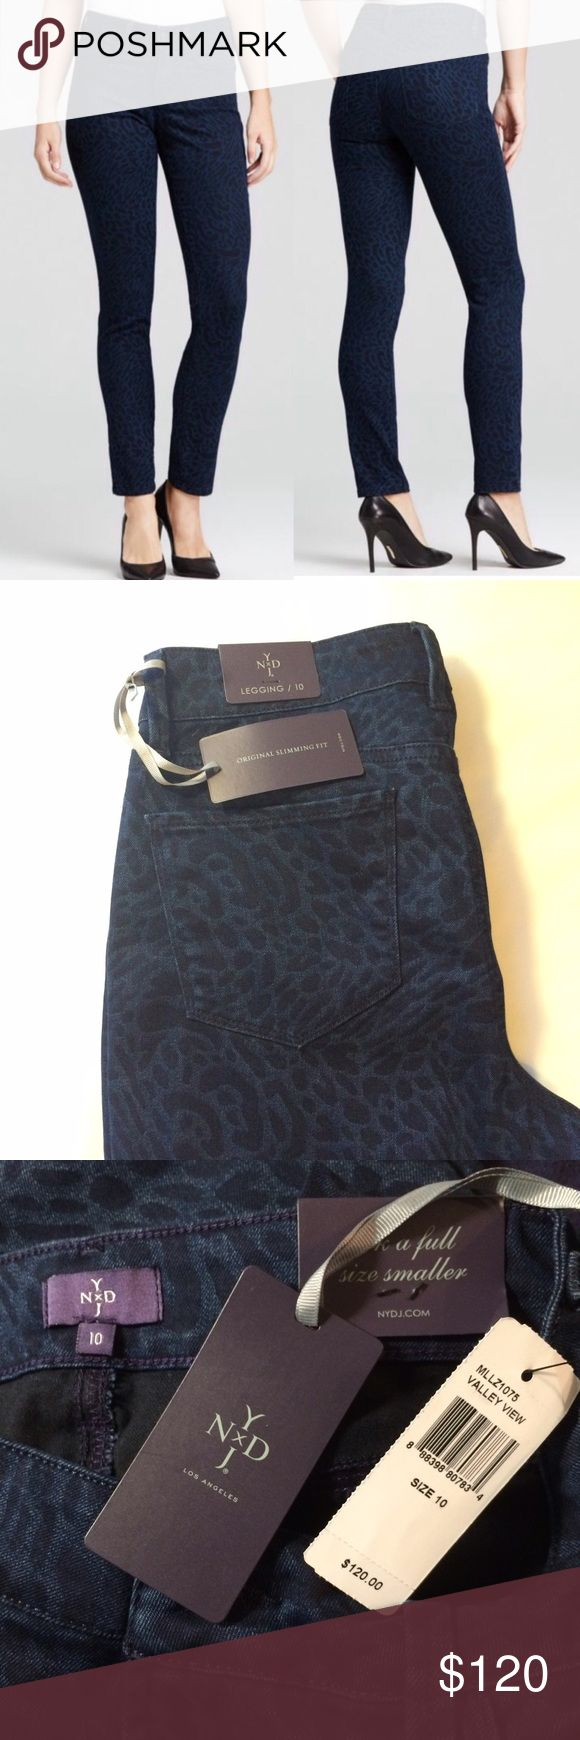 """NYDJ 🆕 Valley View Slimming Jean Legging size 10 NYDJ Valley View Slimming Jean Legging size 10. New with tags. Royal blue and black all over cheetah print. Waist measures 16"""" flat across at back. Inseam is 31"""". Front rise 10"""", rear rise 16"""". Offers welcome. NYDJ Pants Leggings"""